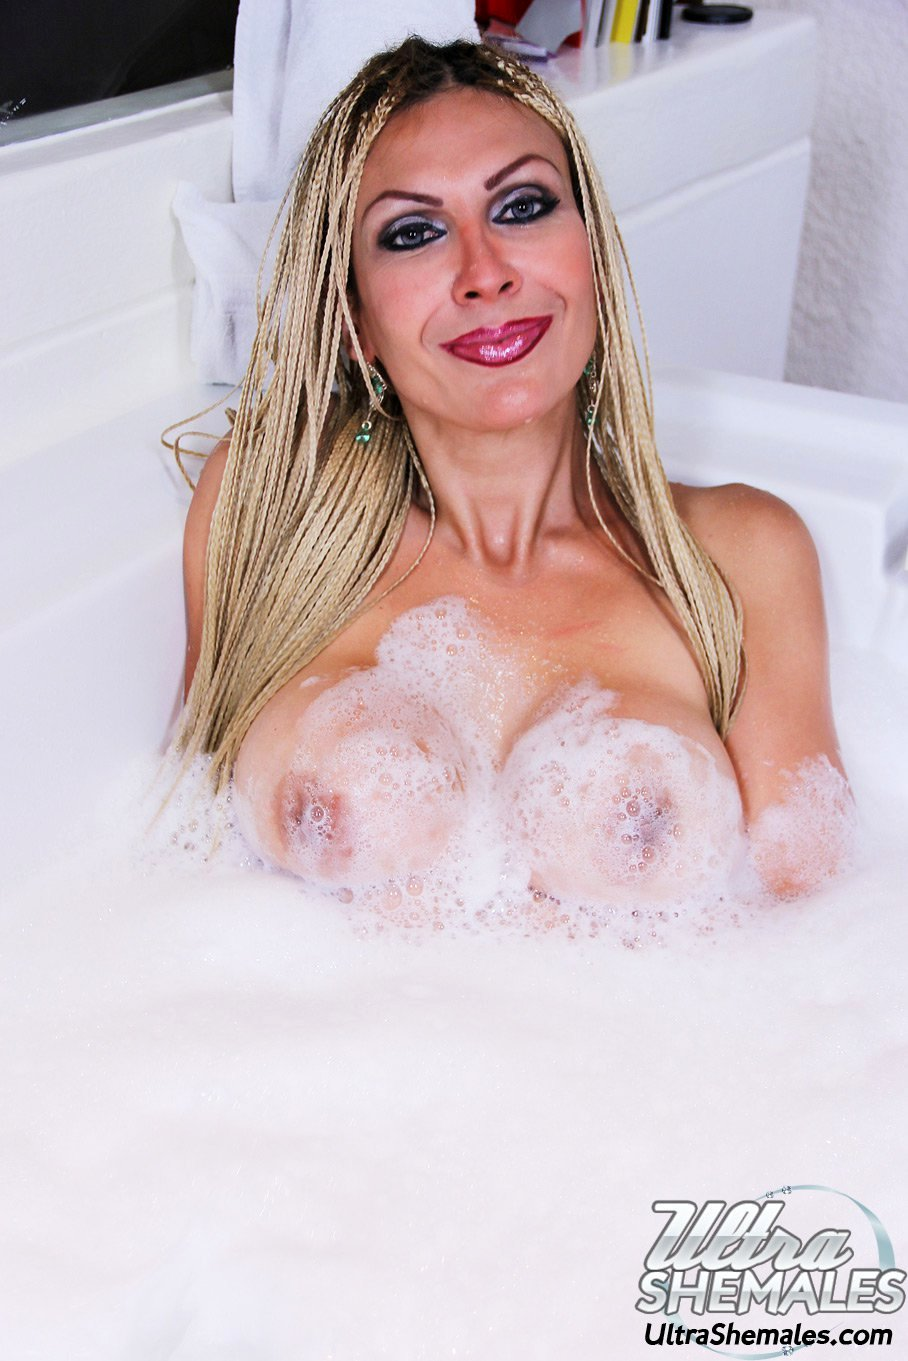 A MILFY T-Girl With Very Huge Boobs In The Jaccuzzi